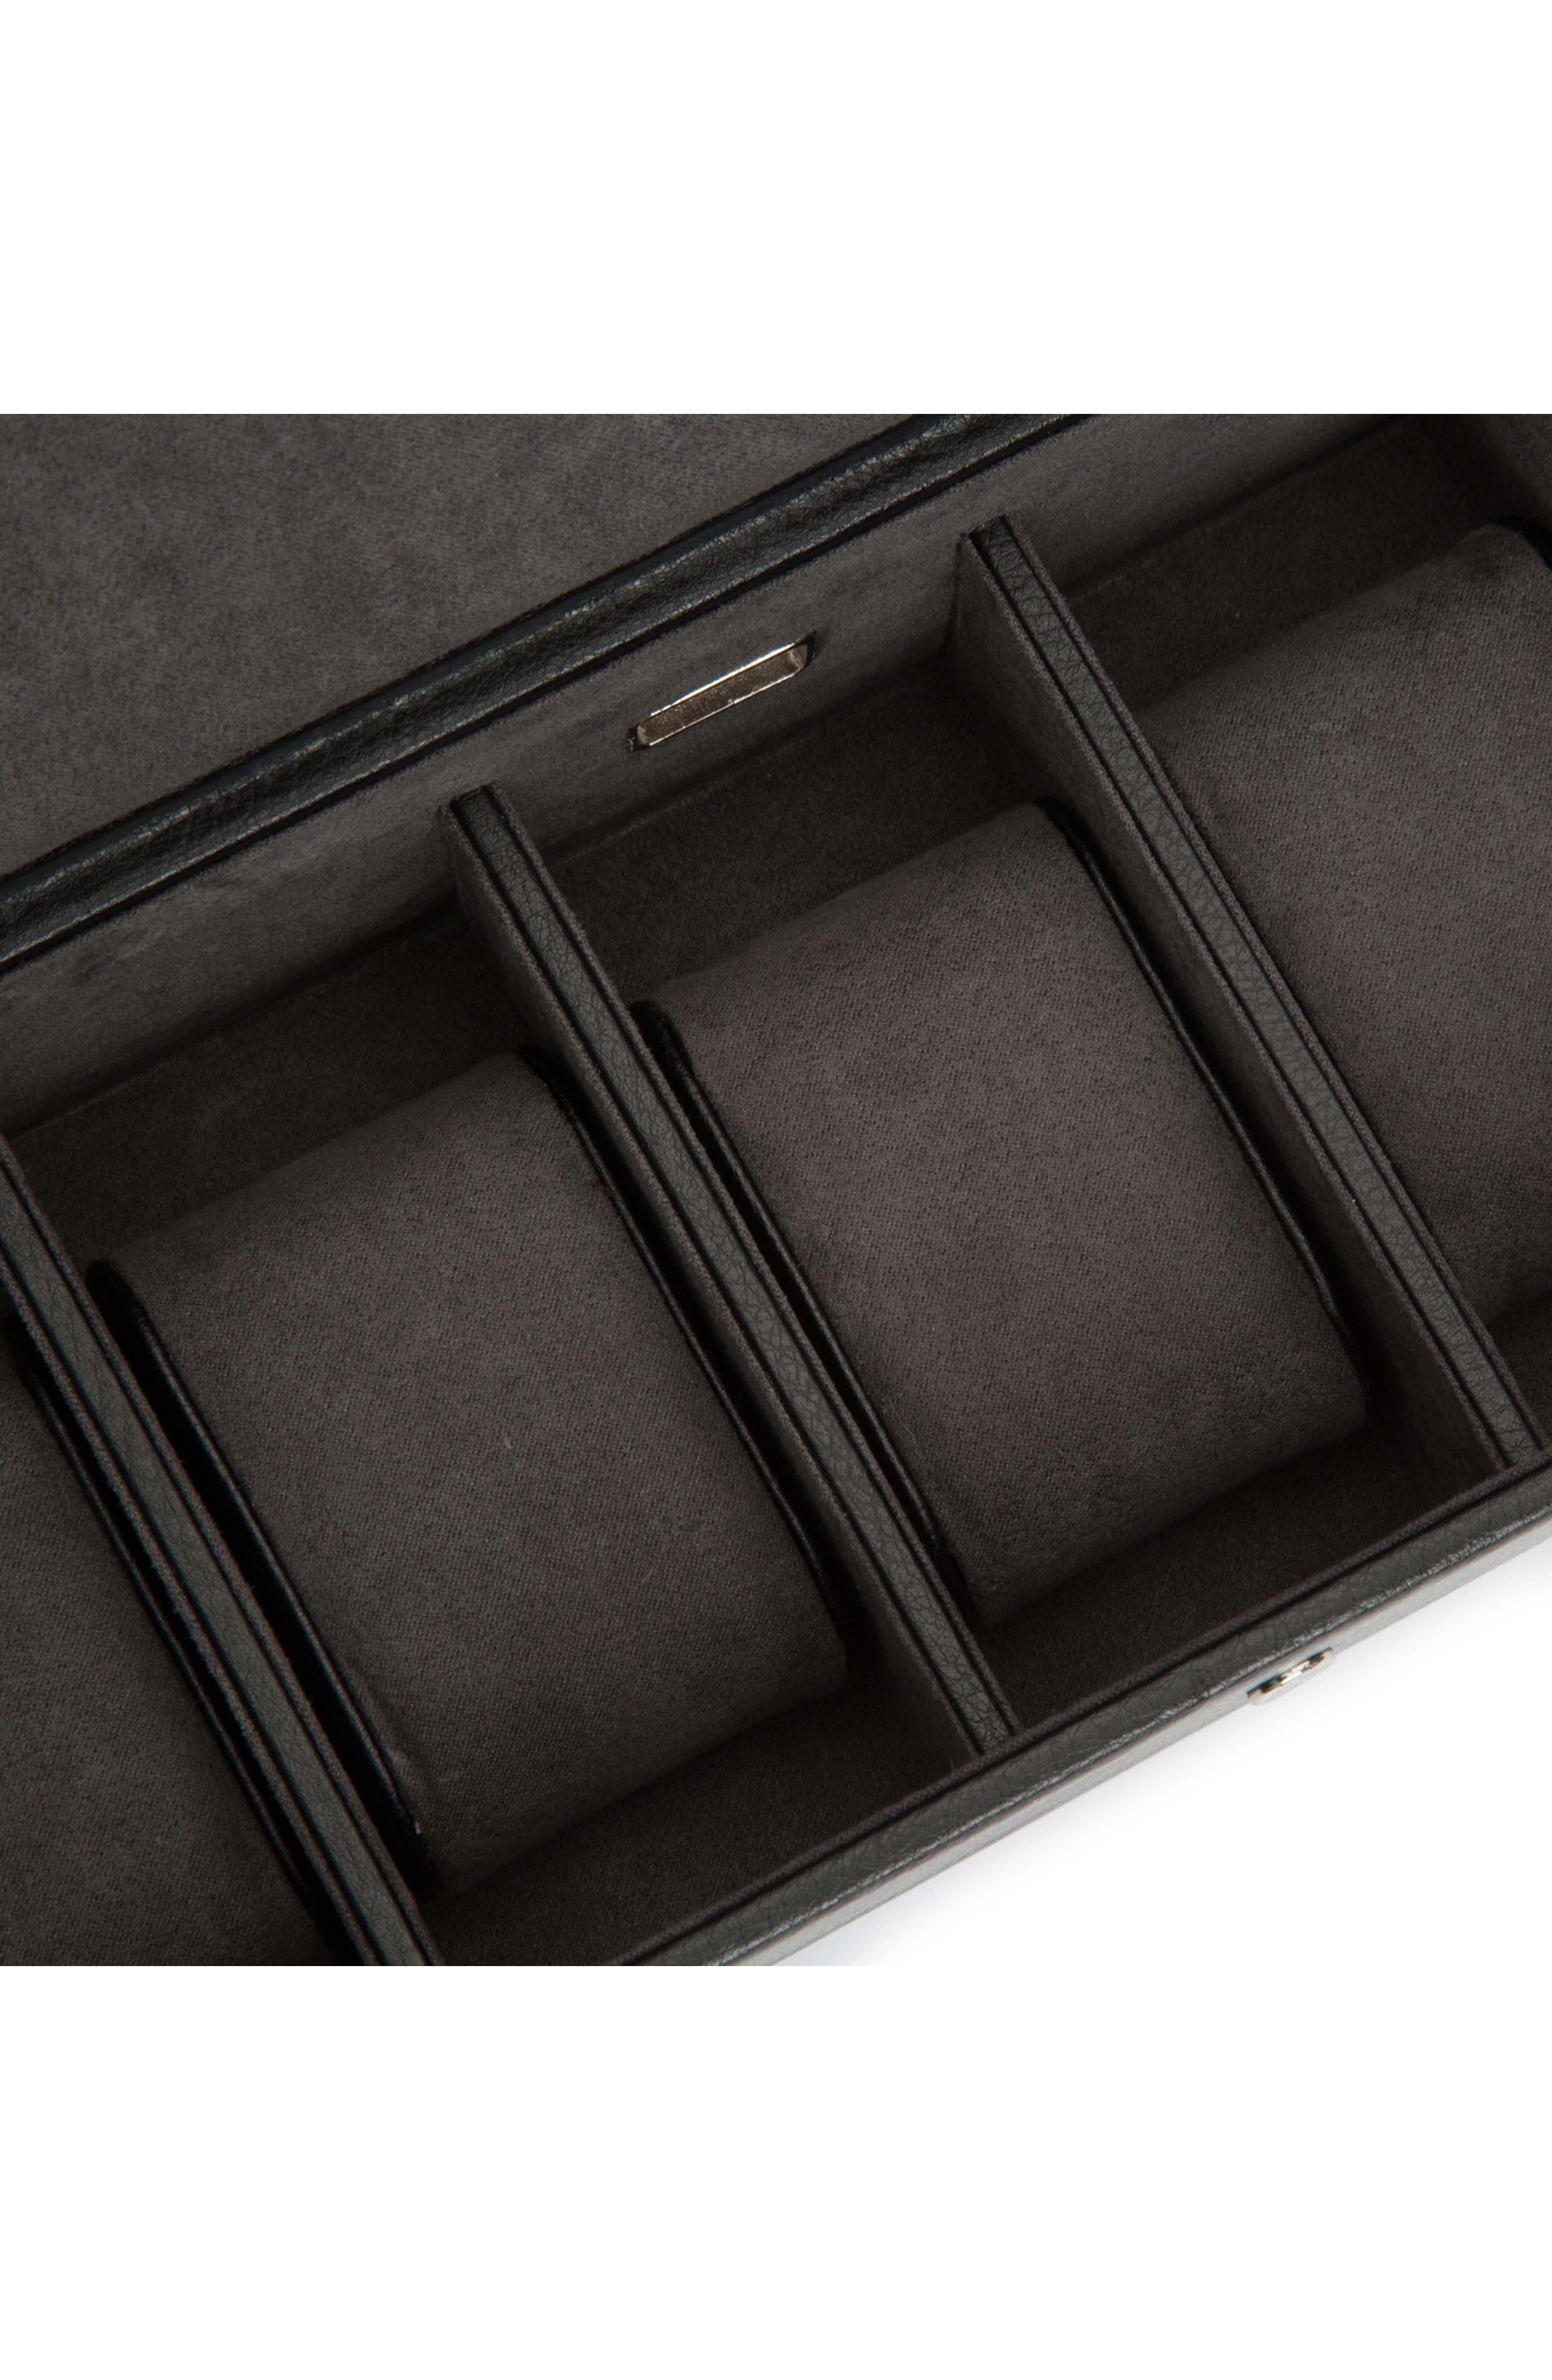 Blake Leather Watch Box,                             Alternate thumbnail 2, color,                             BLACK